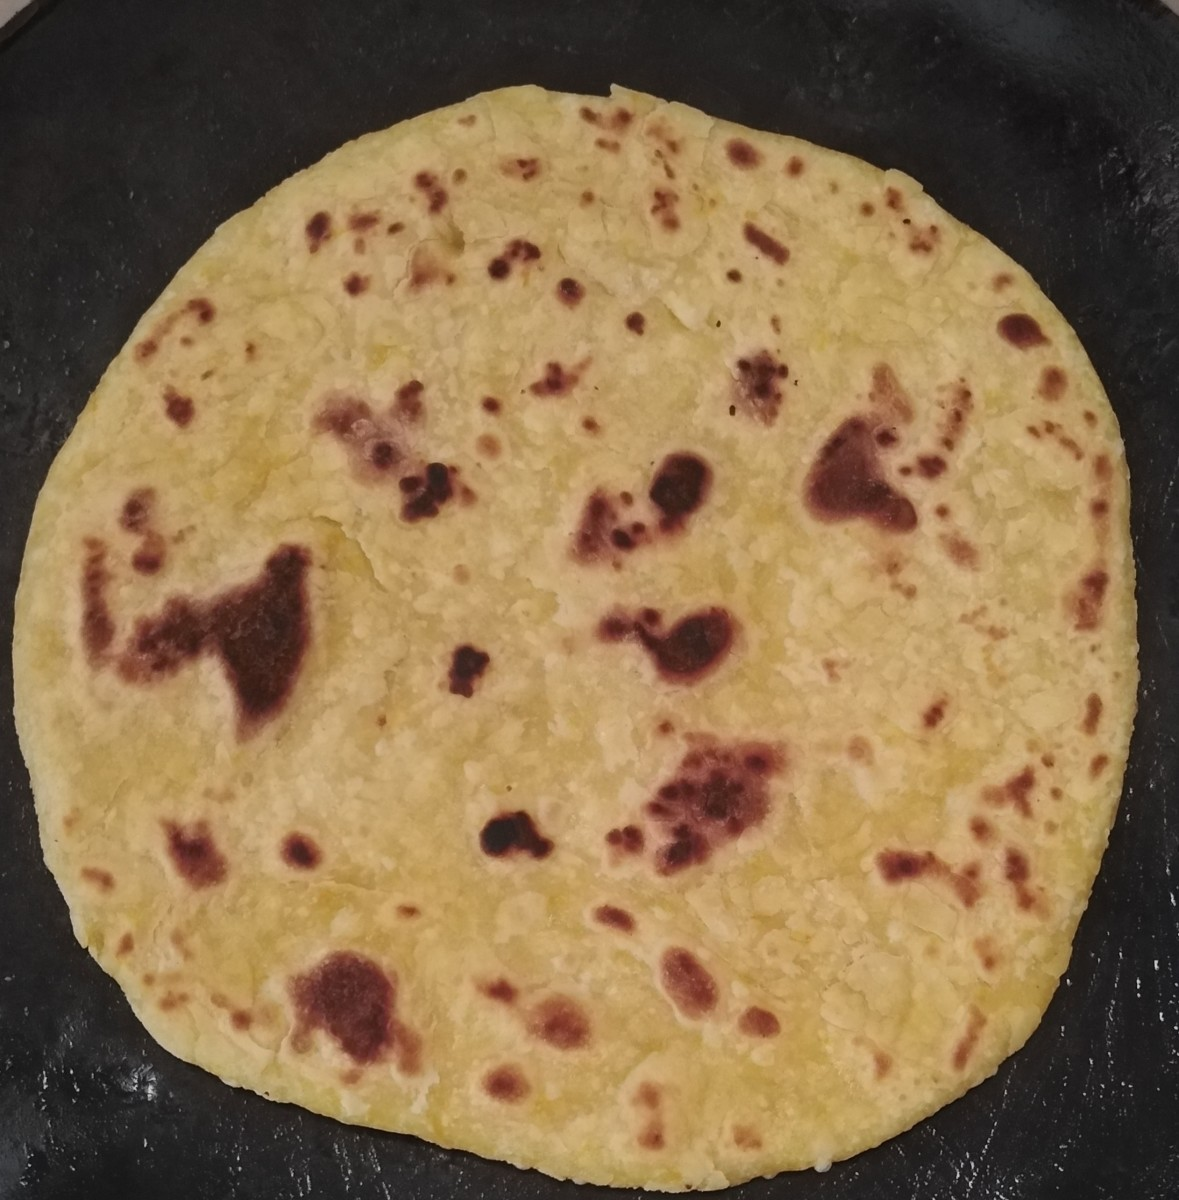 The chapati is cooked. Keep it in a hotpot to keep it warm. If left out in the open, it can harden.